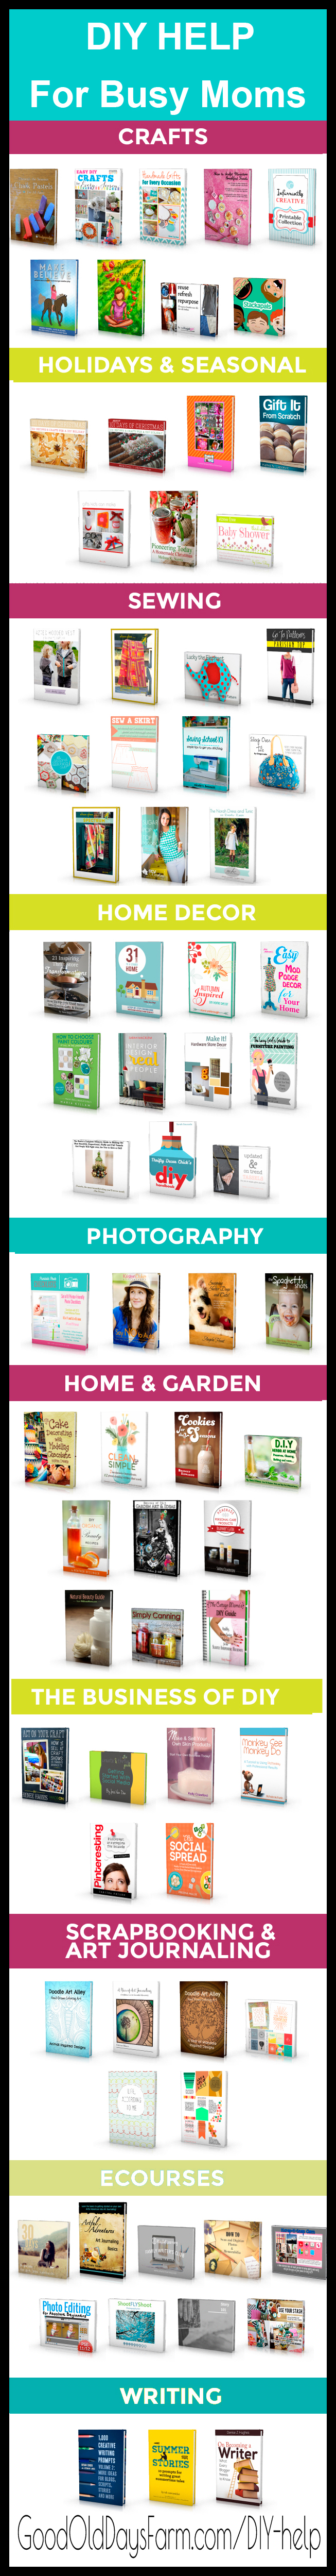 All the books in the Ultimate DIY Ebook Bundle Collection